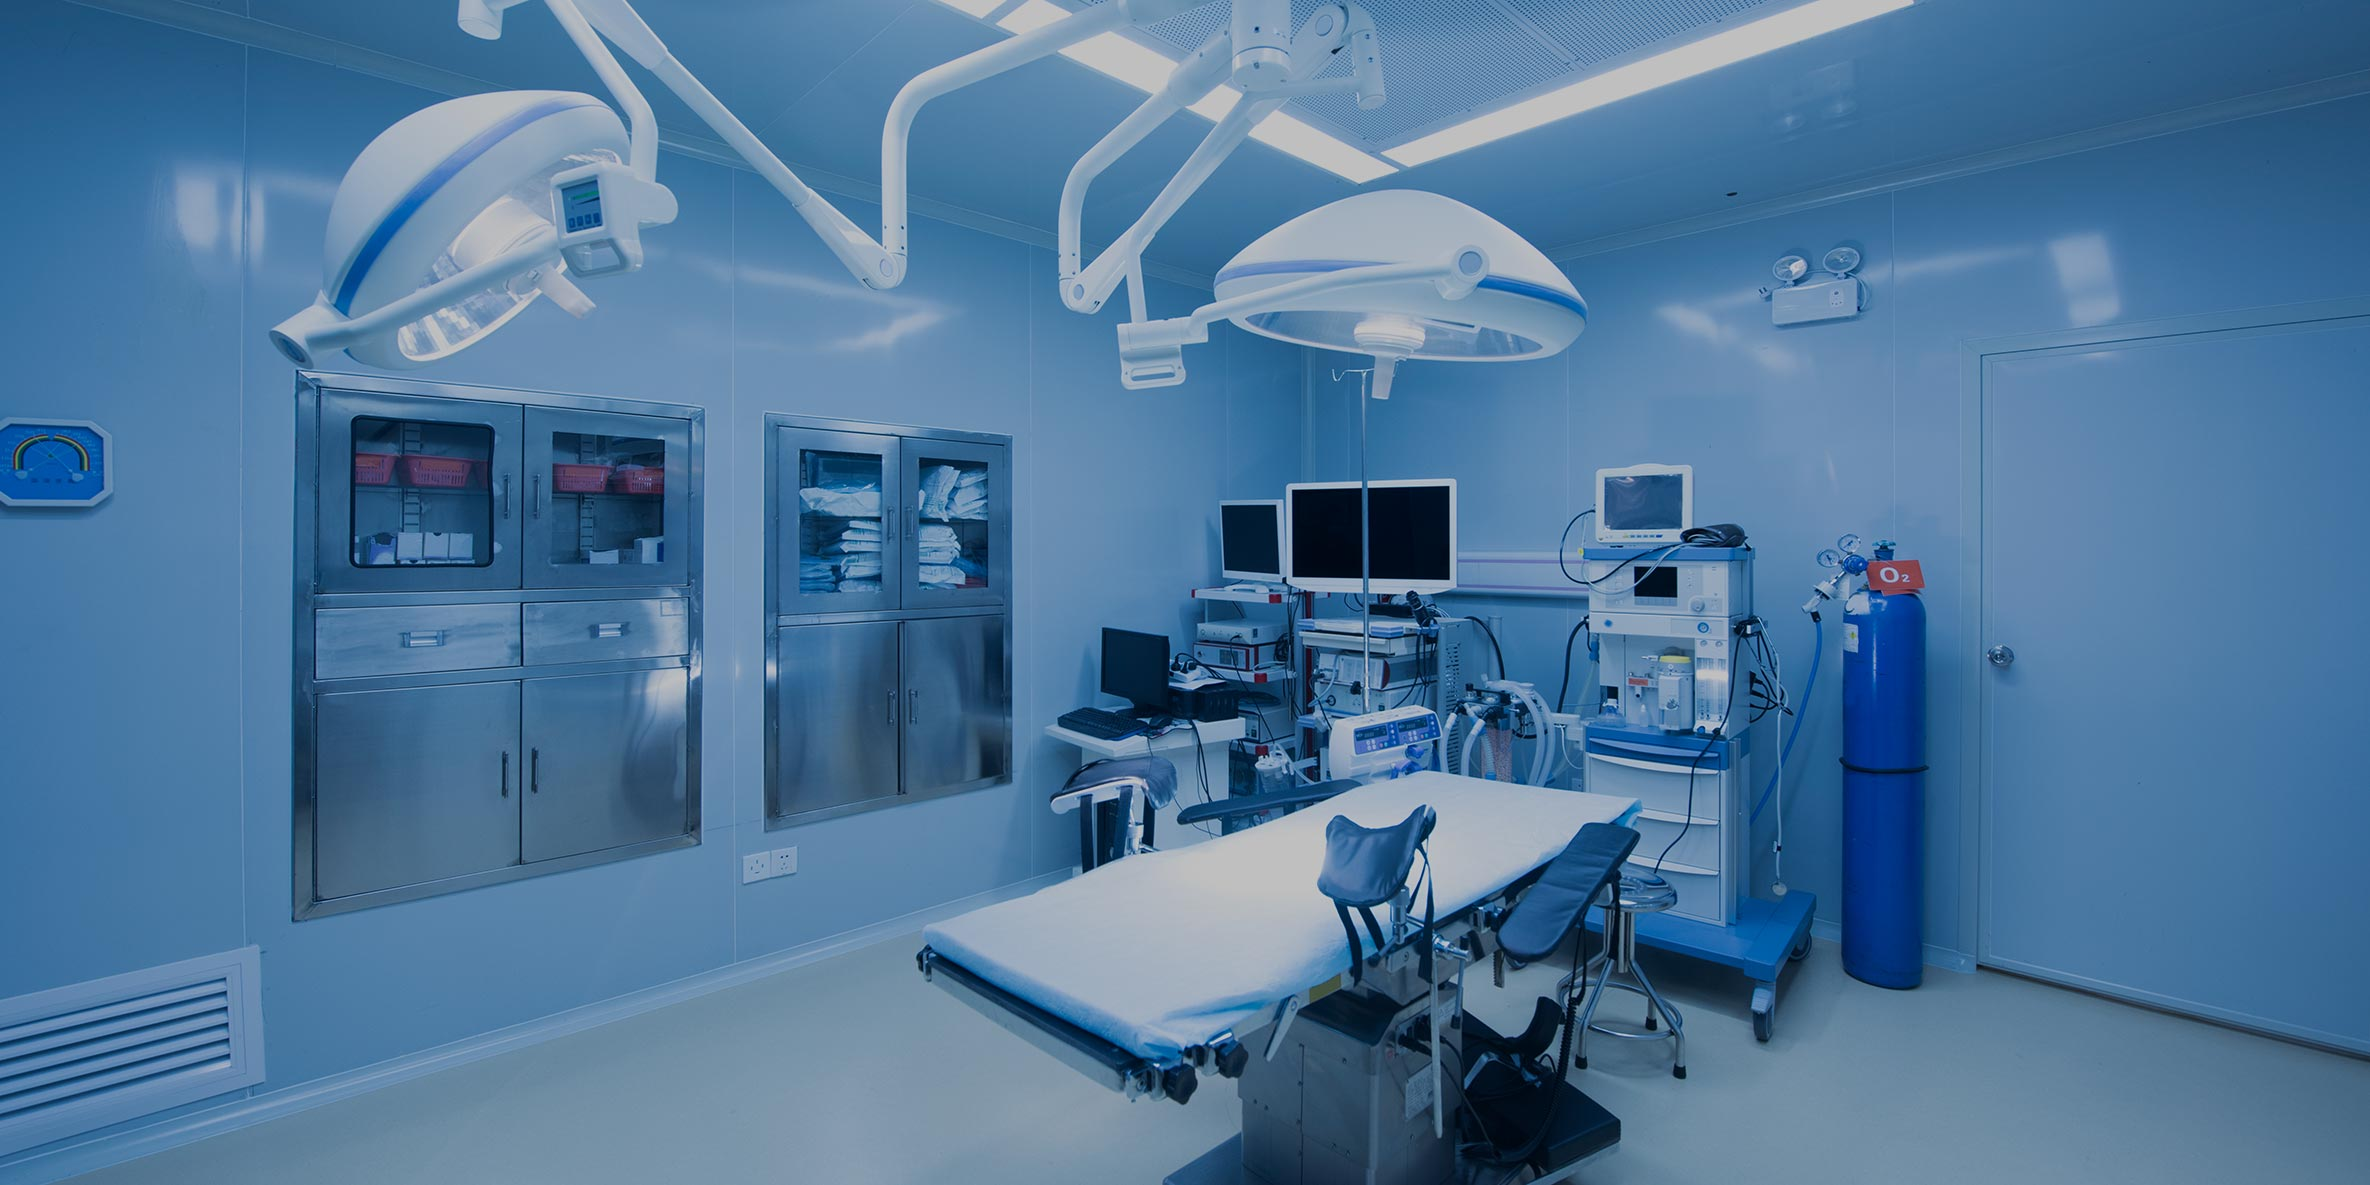 Medical Equipment Security: Tips for Proper Protection